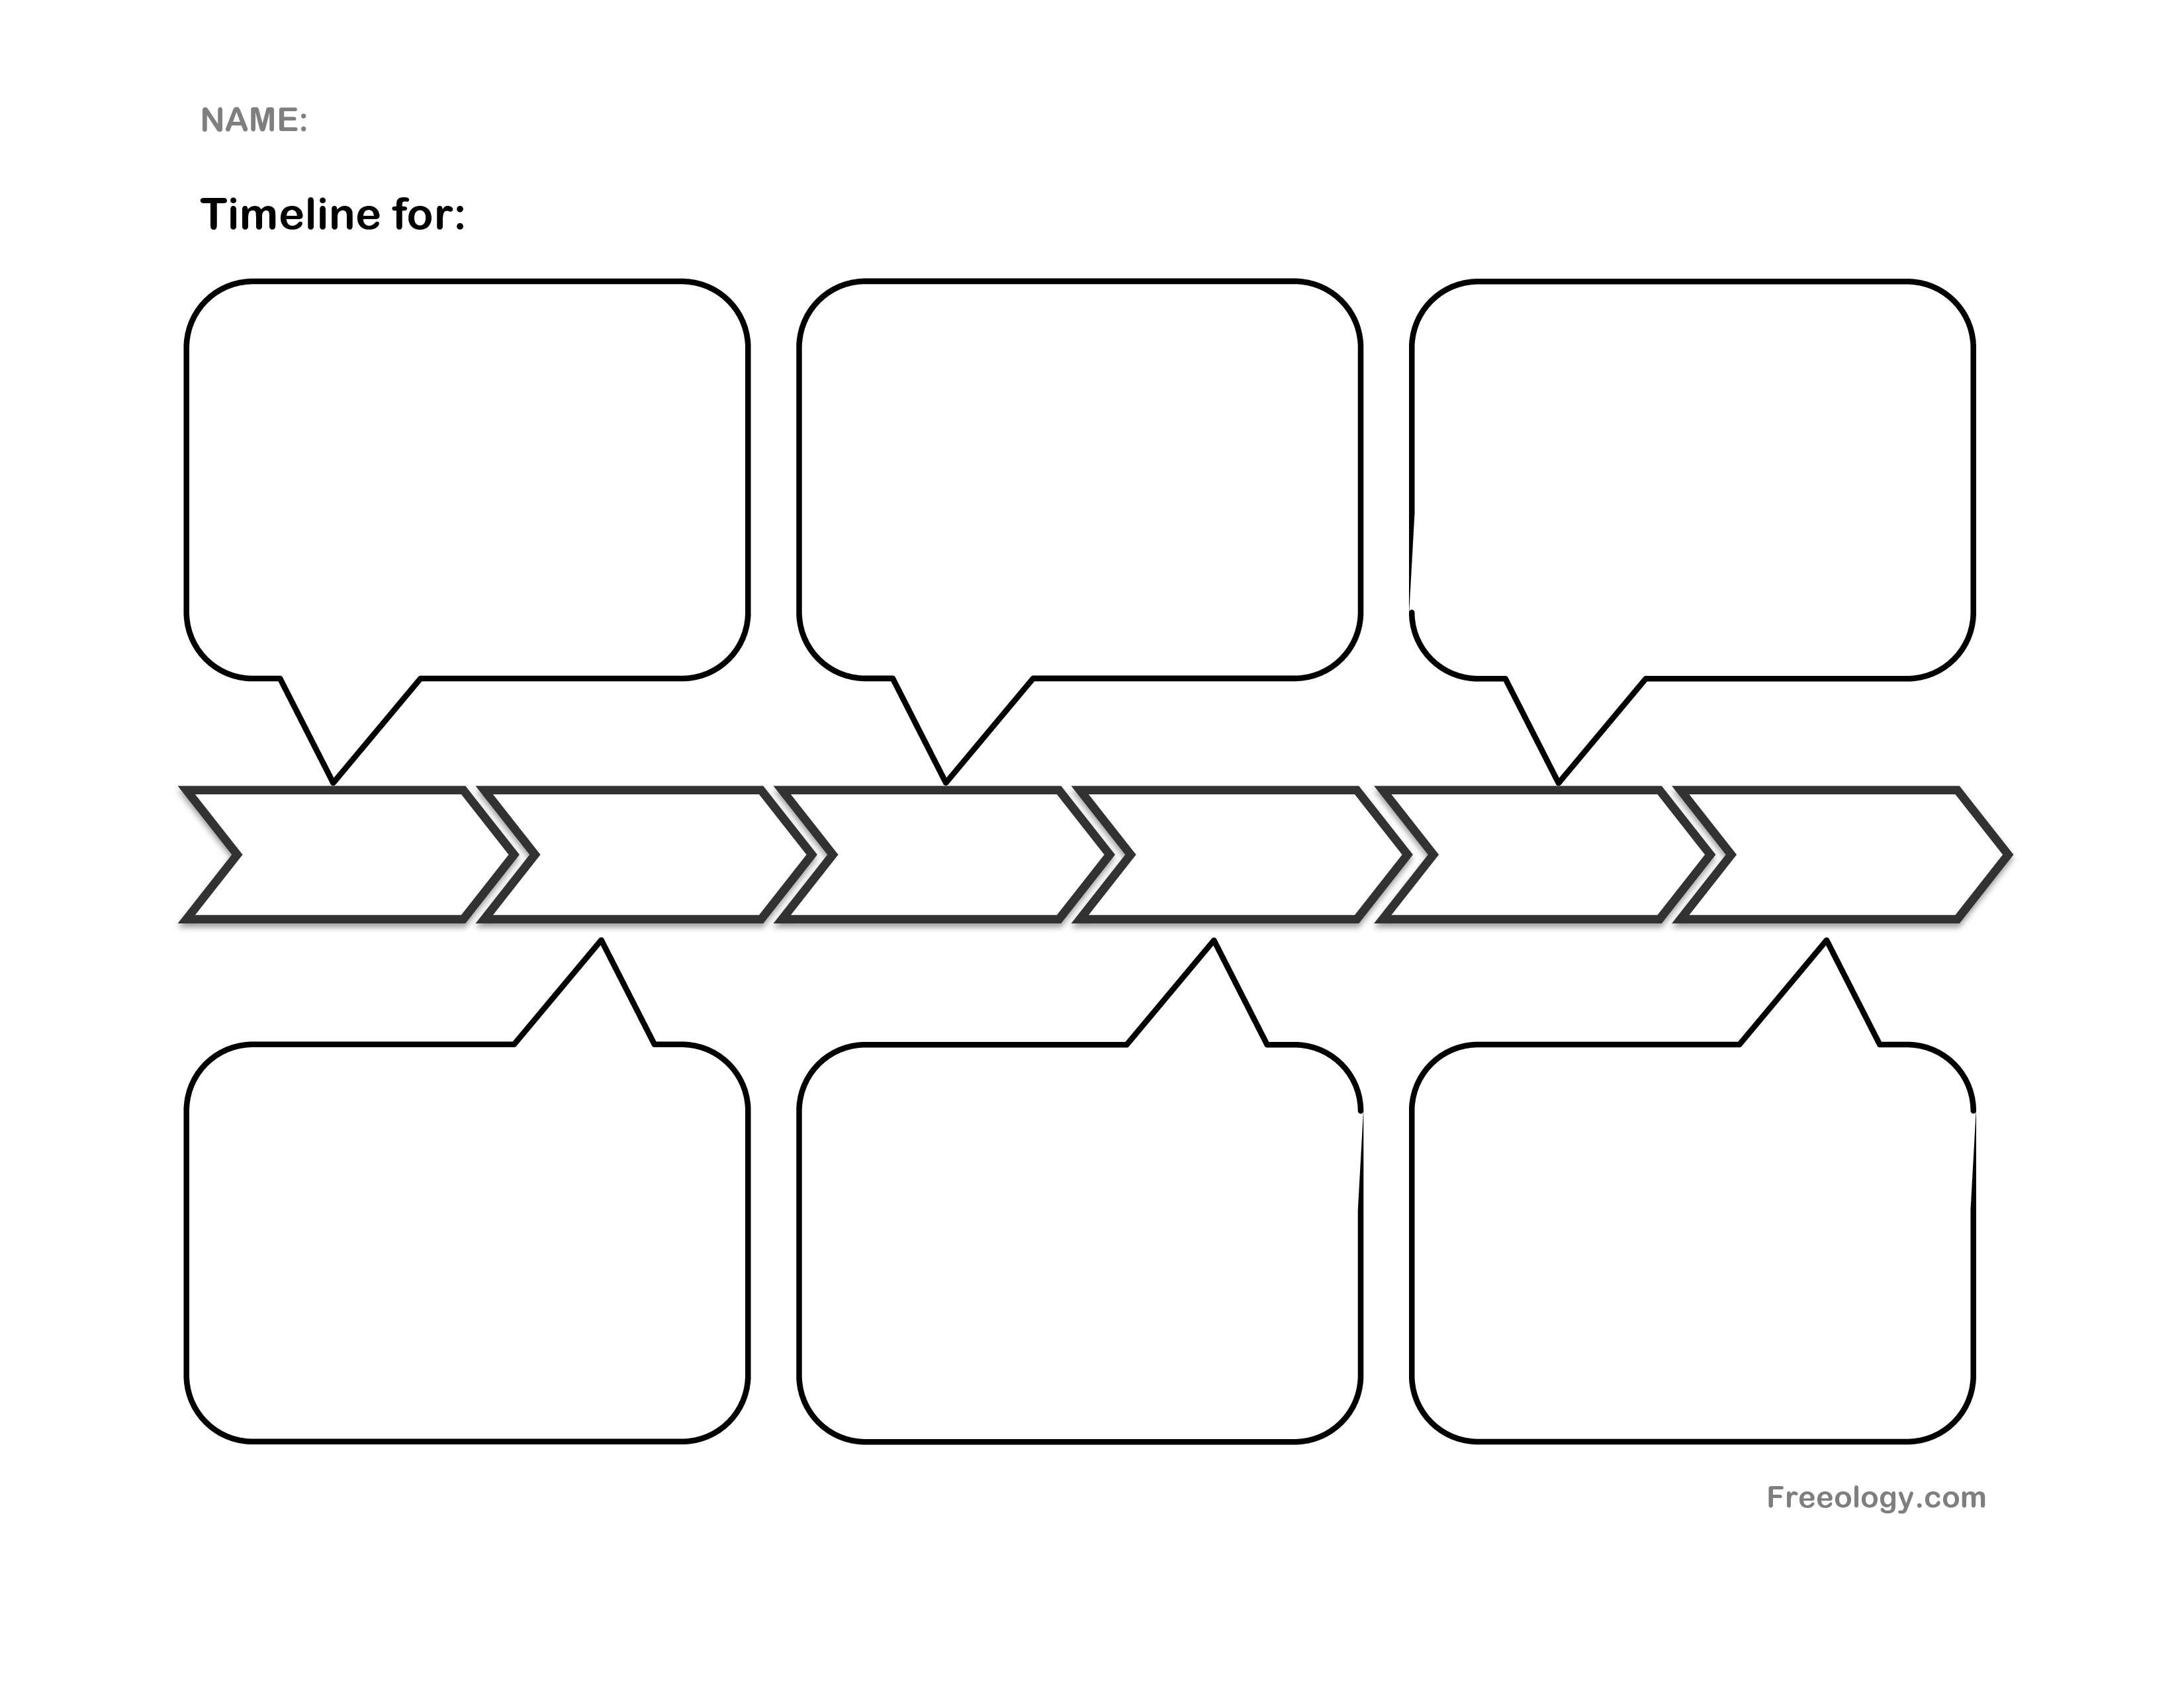 Timeline template clipart png black and white stock Horizontal timeline template clipart images gallery for free ... png black and white stock